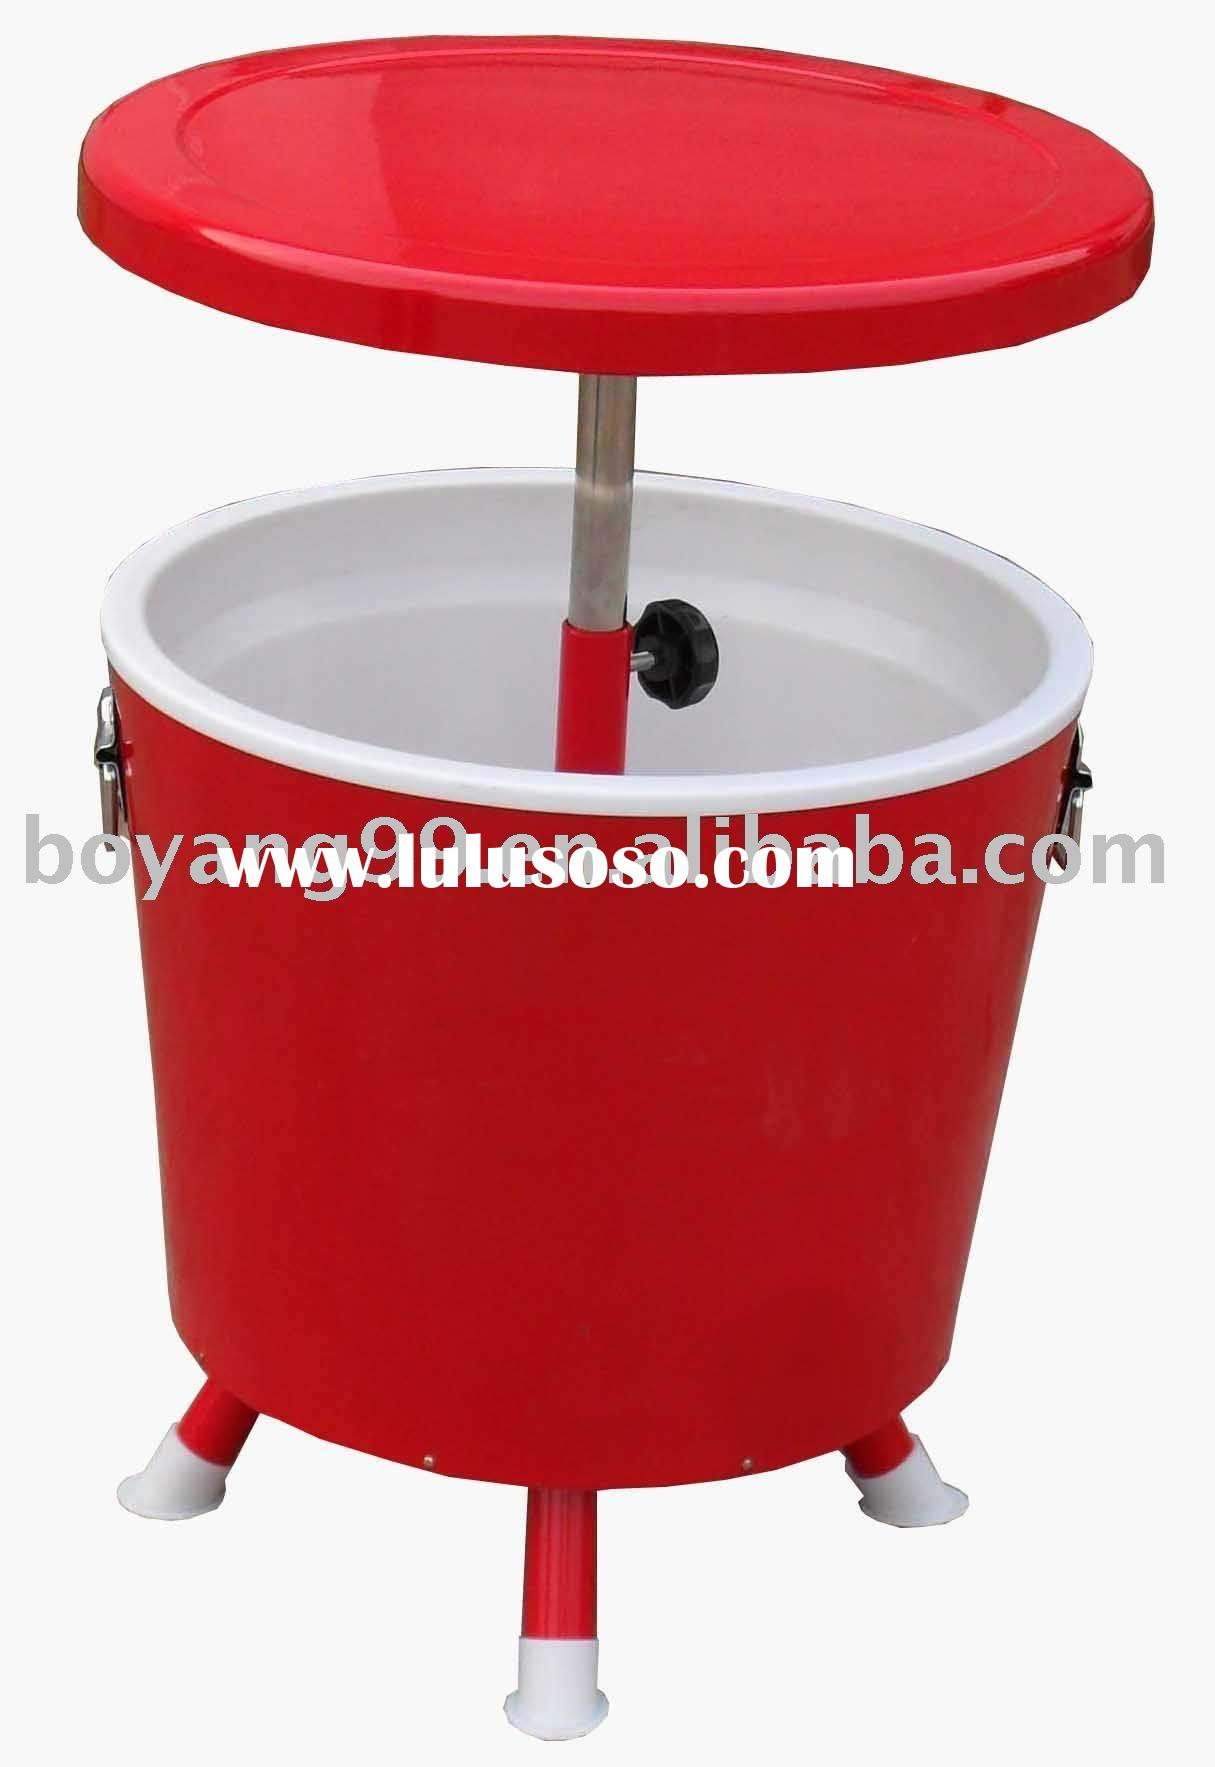 Patio Bar Table Cooler, Patio Bar Table Cooler Manufacturers In ... Oakland  Living Stainless Steel Ice Bucket ...